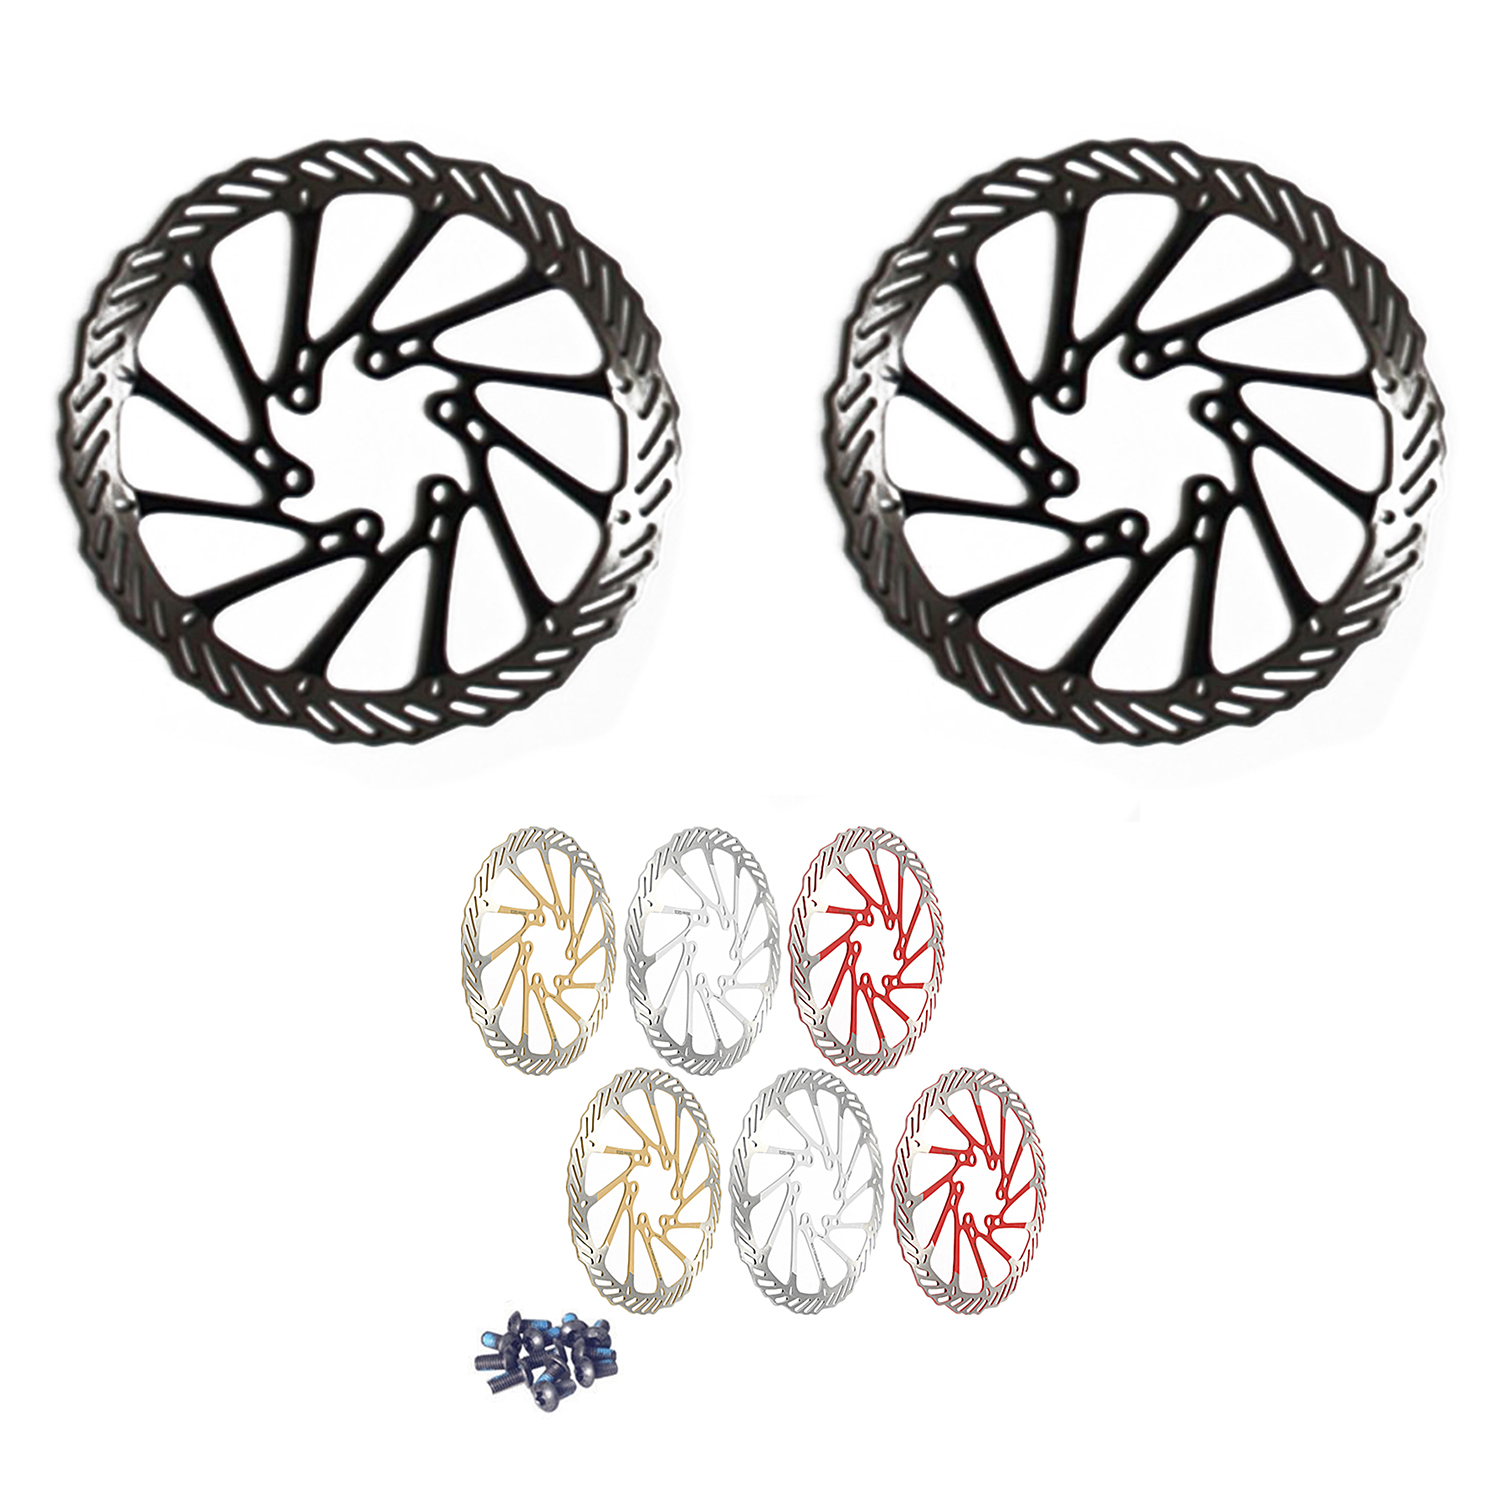 a4910b5a32f This bike brake disc on sell suitable for Avid G3. It's made of stainless  stell, great for Mountain bike. With 6pcs bolts and easy to install.